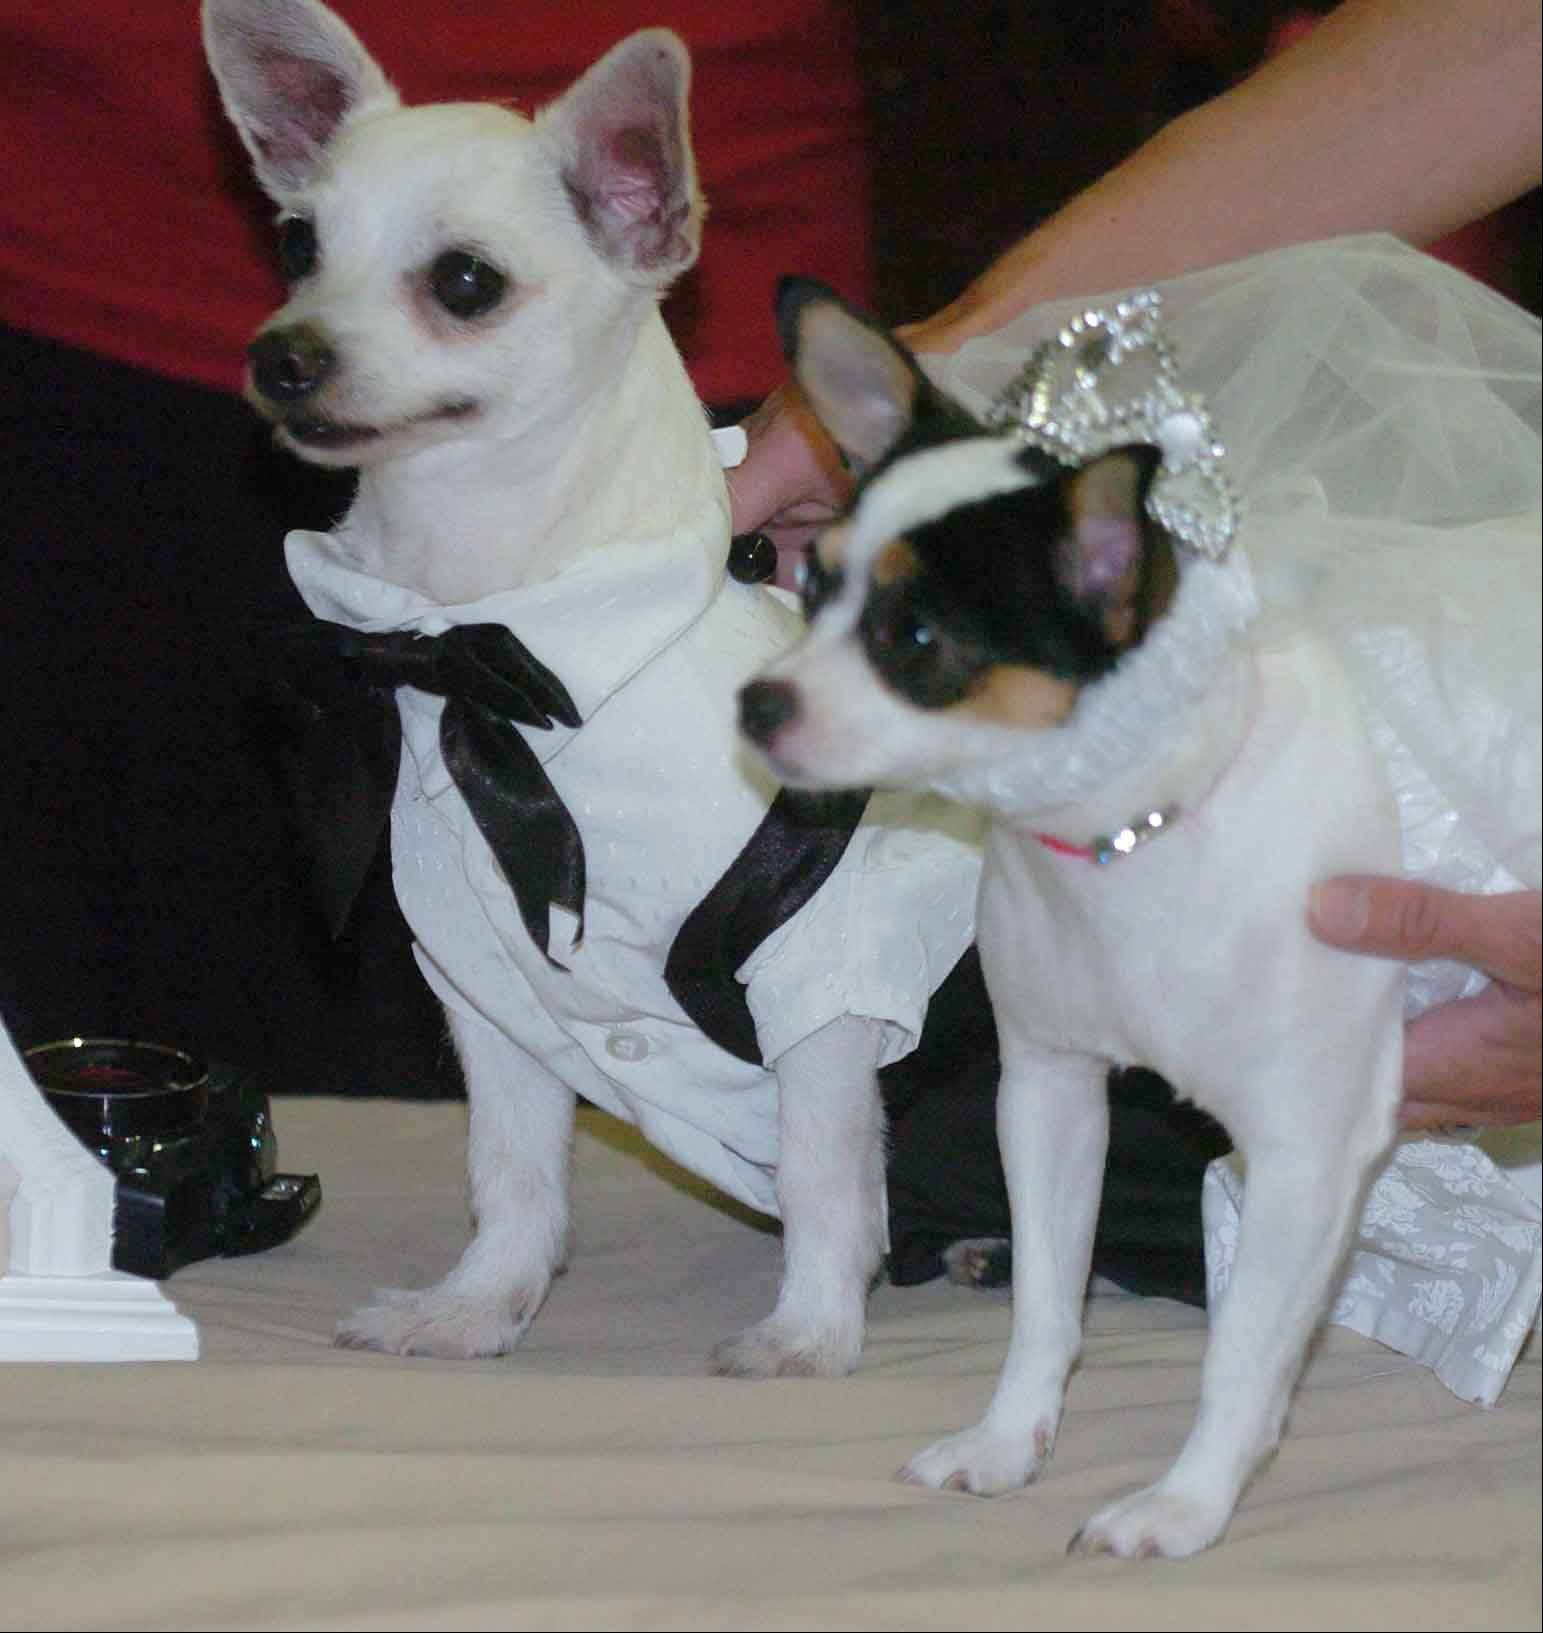 Sparky Perez, left, and Peanut Bobik, right, celebrated their summer nuptials Thursday, June 30, at the DuPage Convalescent Center's 3 North unit. The wedding was organized as a fun activity for residents by nurse's aid Cheryl Bobik.